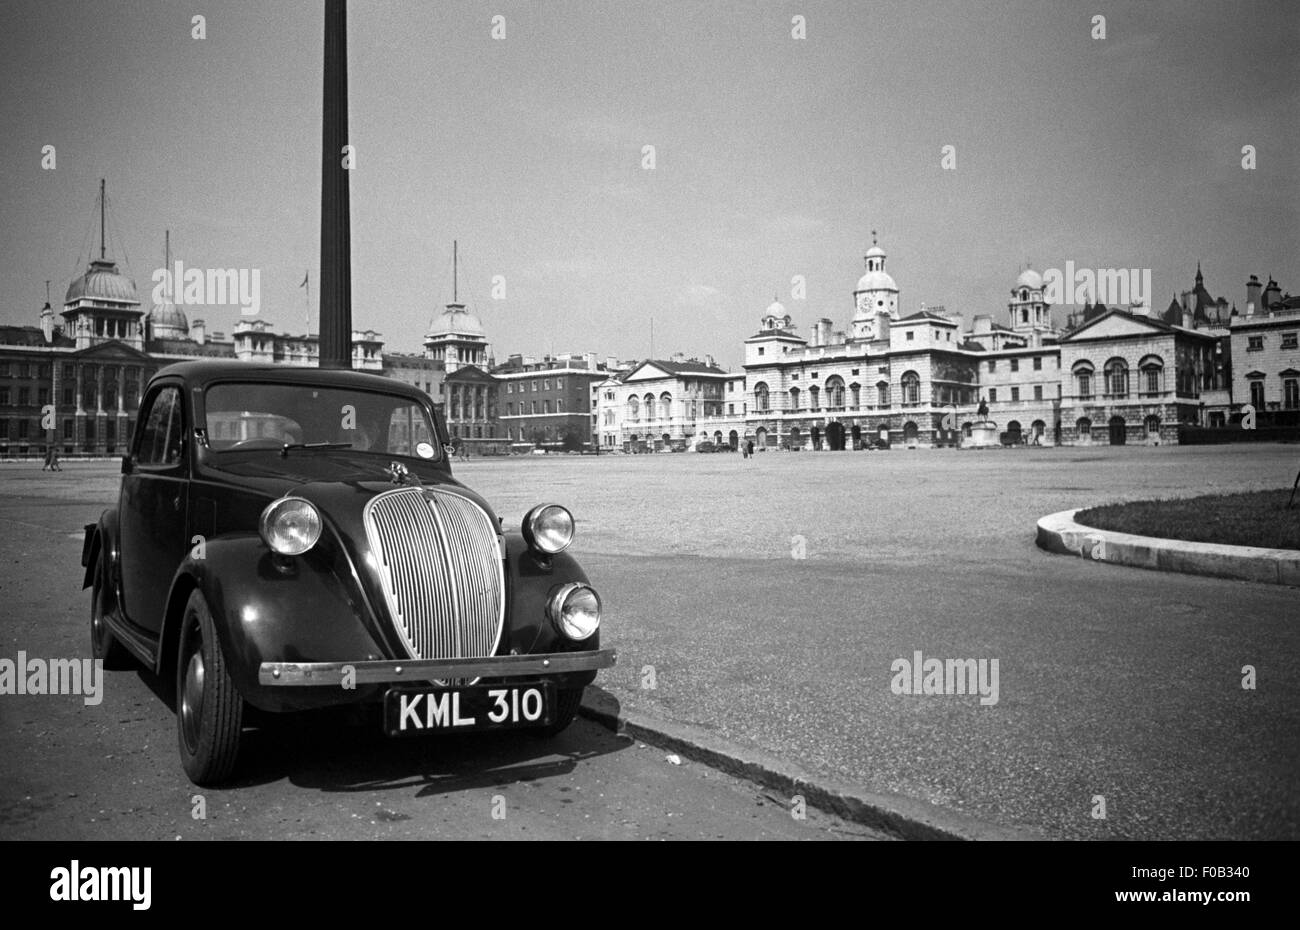 A Topolino Fiat 500 car parked at Horse Guards Parade in London - Stock Image